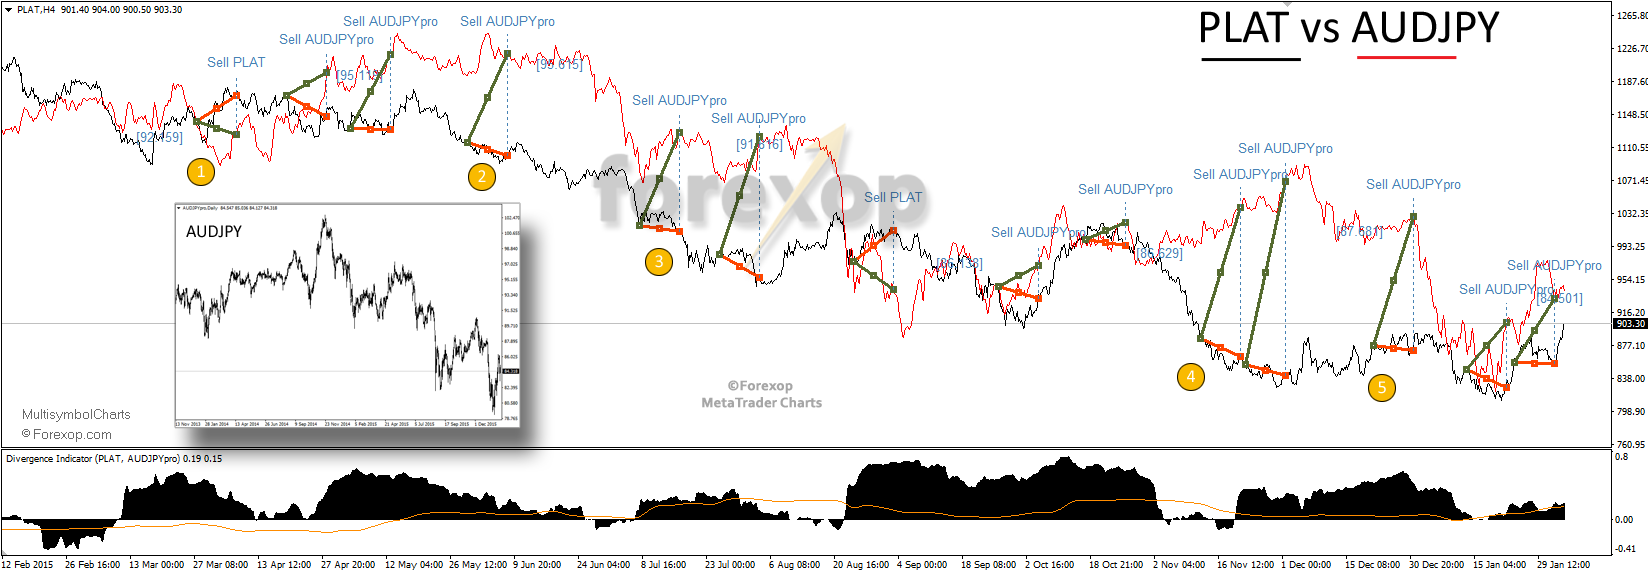 Figure 1: Trading divergences between platinum futures and AUDJPY